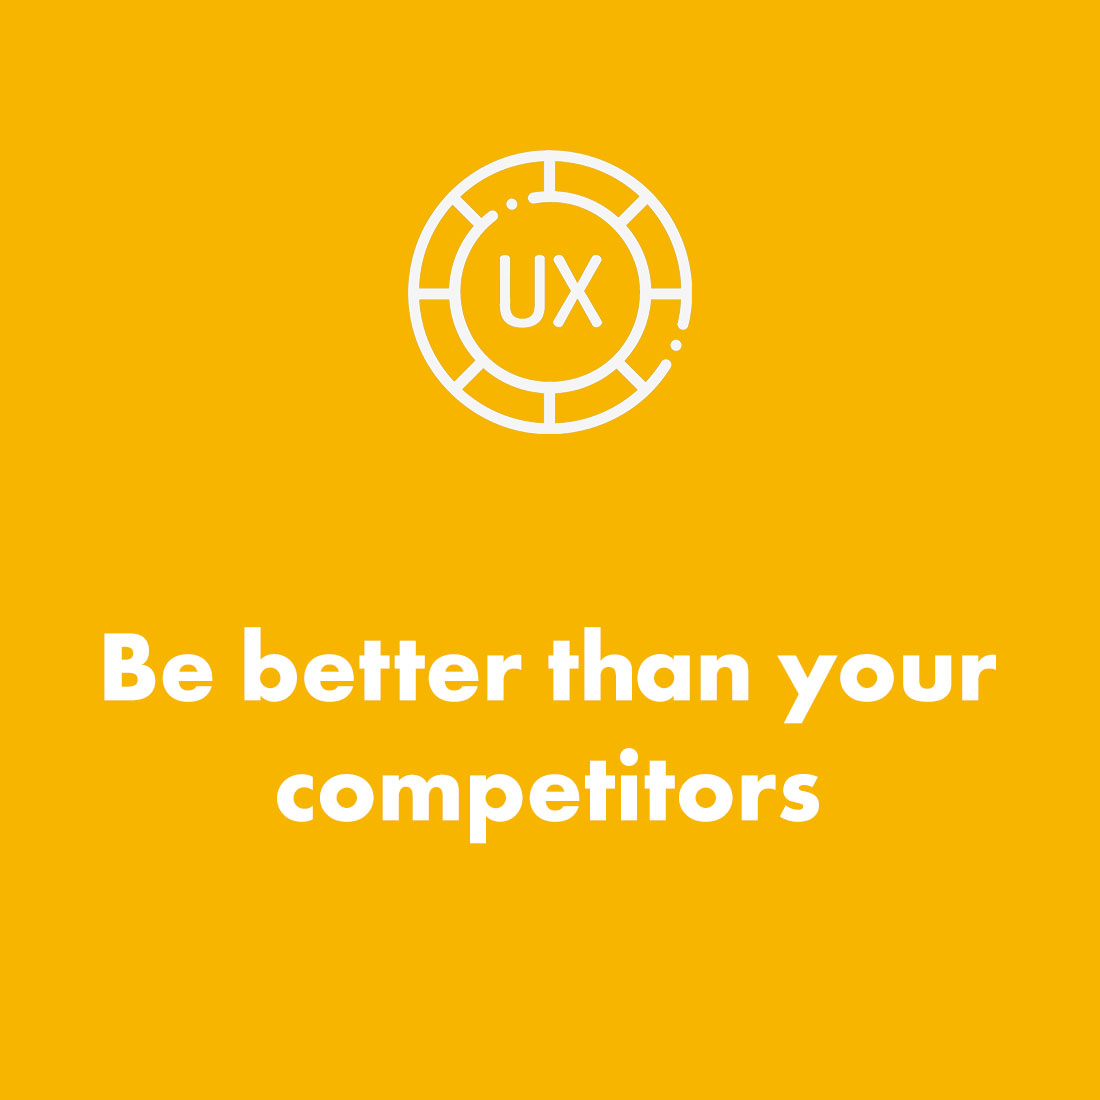 USER EXPERIENCE - Create an amazing user experience across your digital channels to encourage return business.